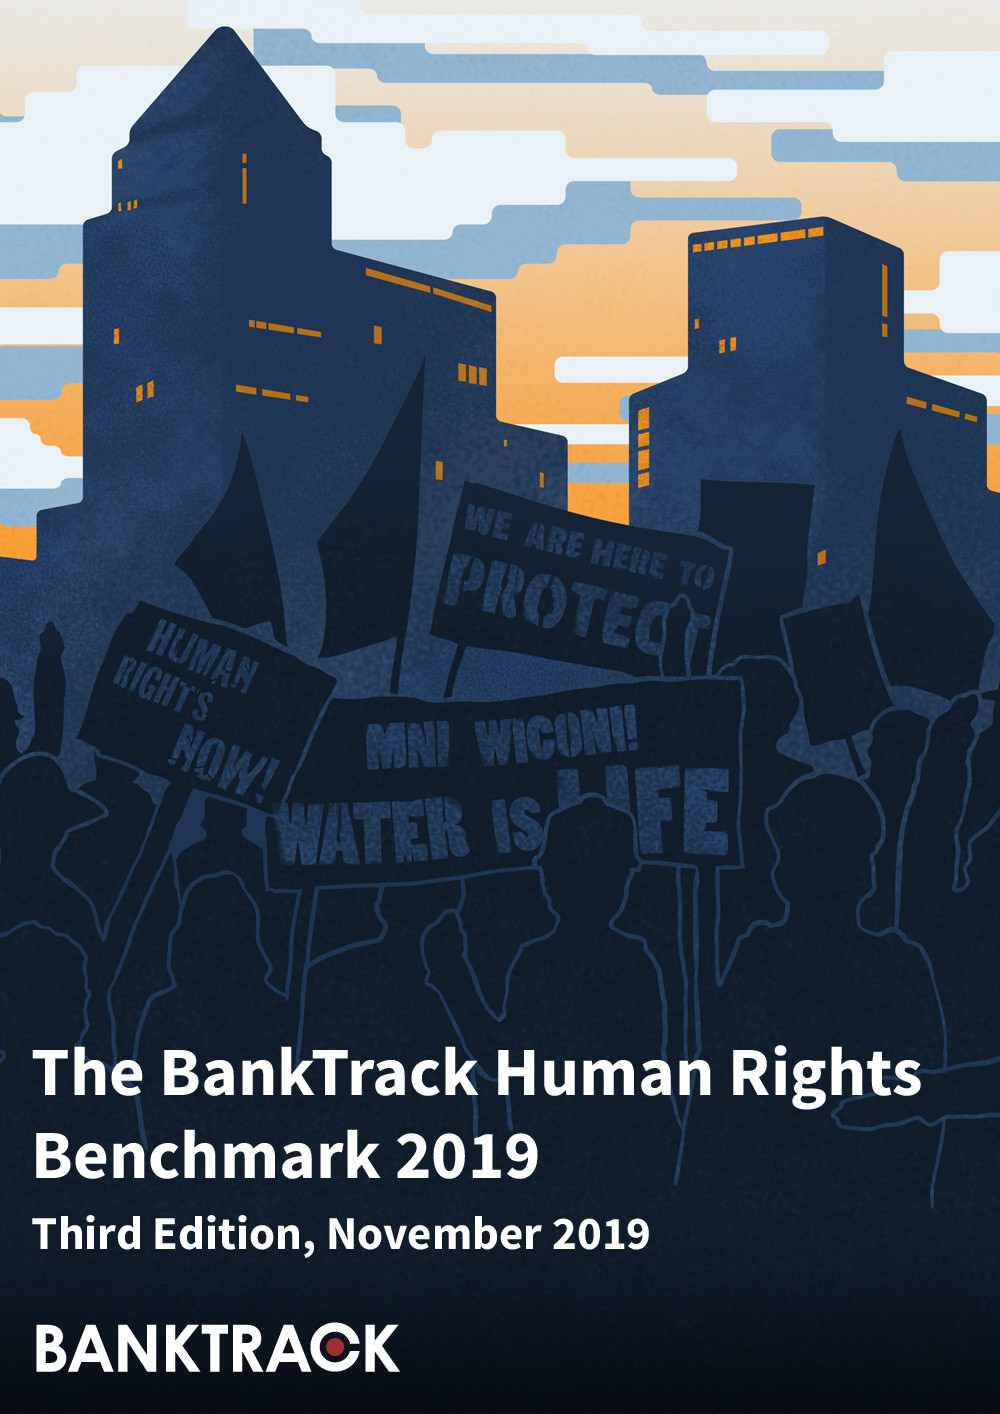 BankTrack Human Rights Benchmark 2019 front cover